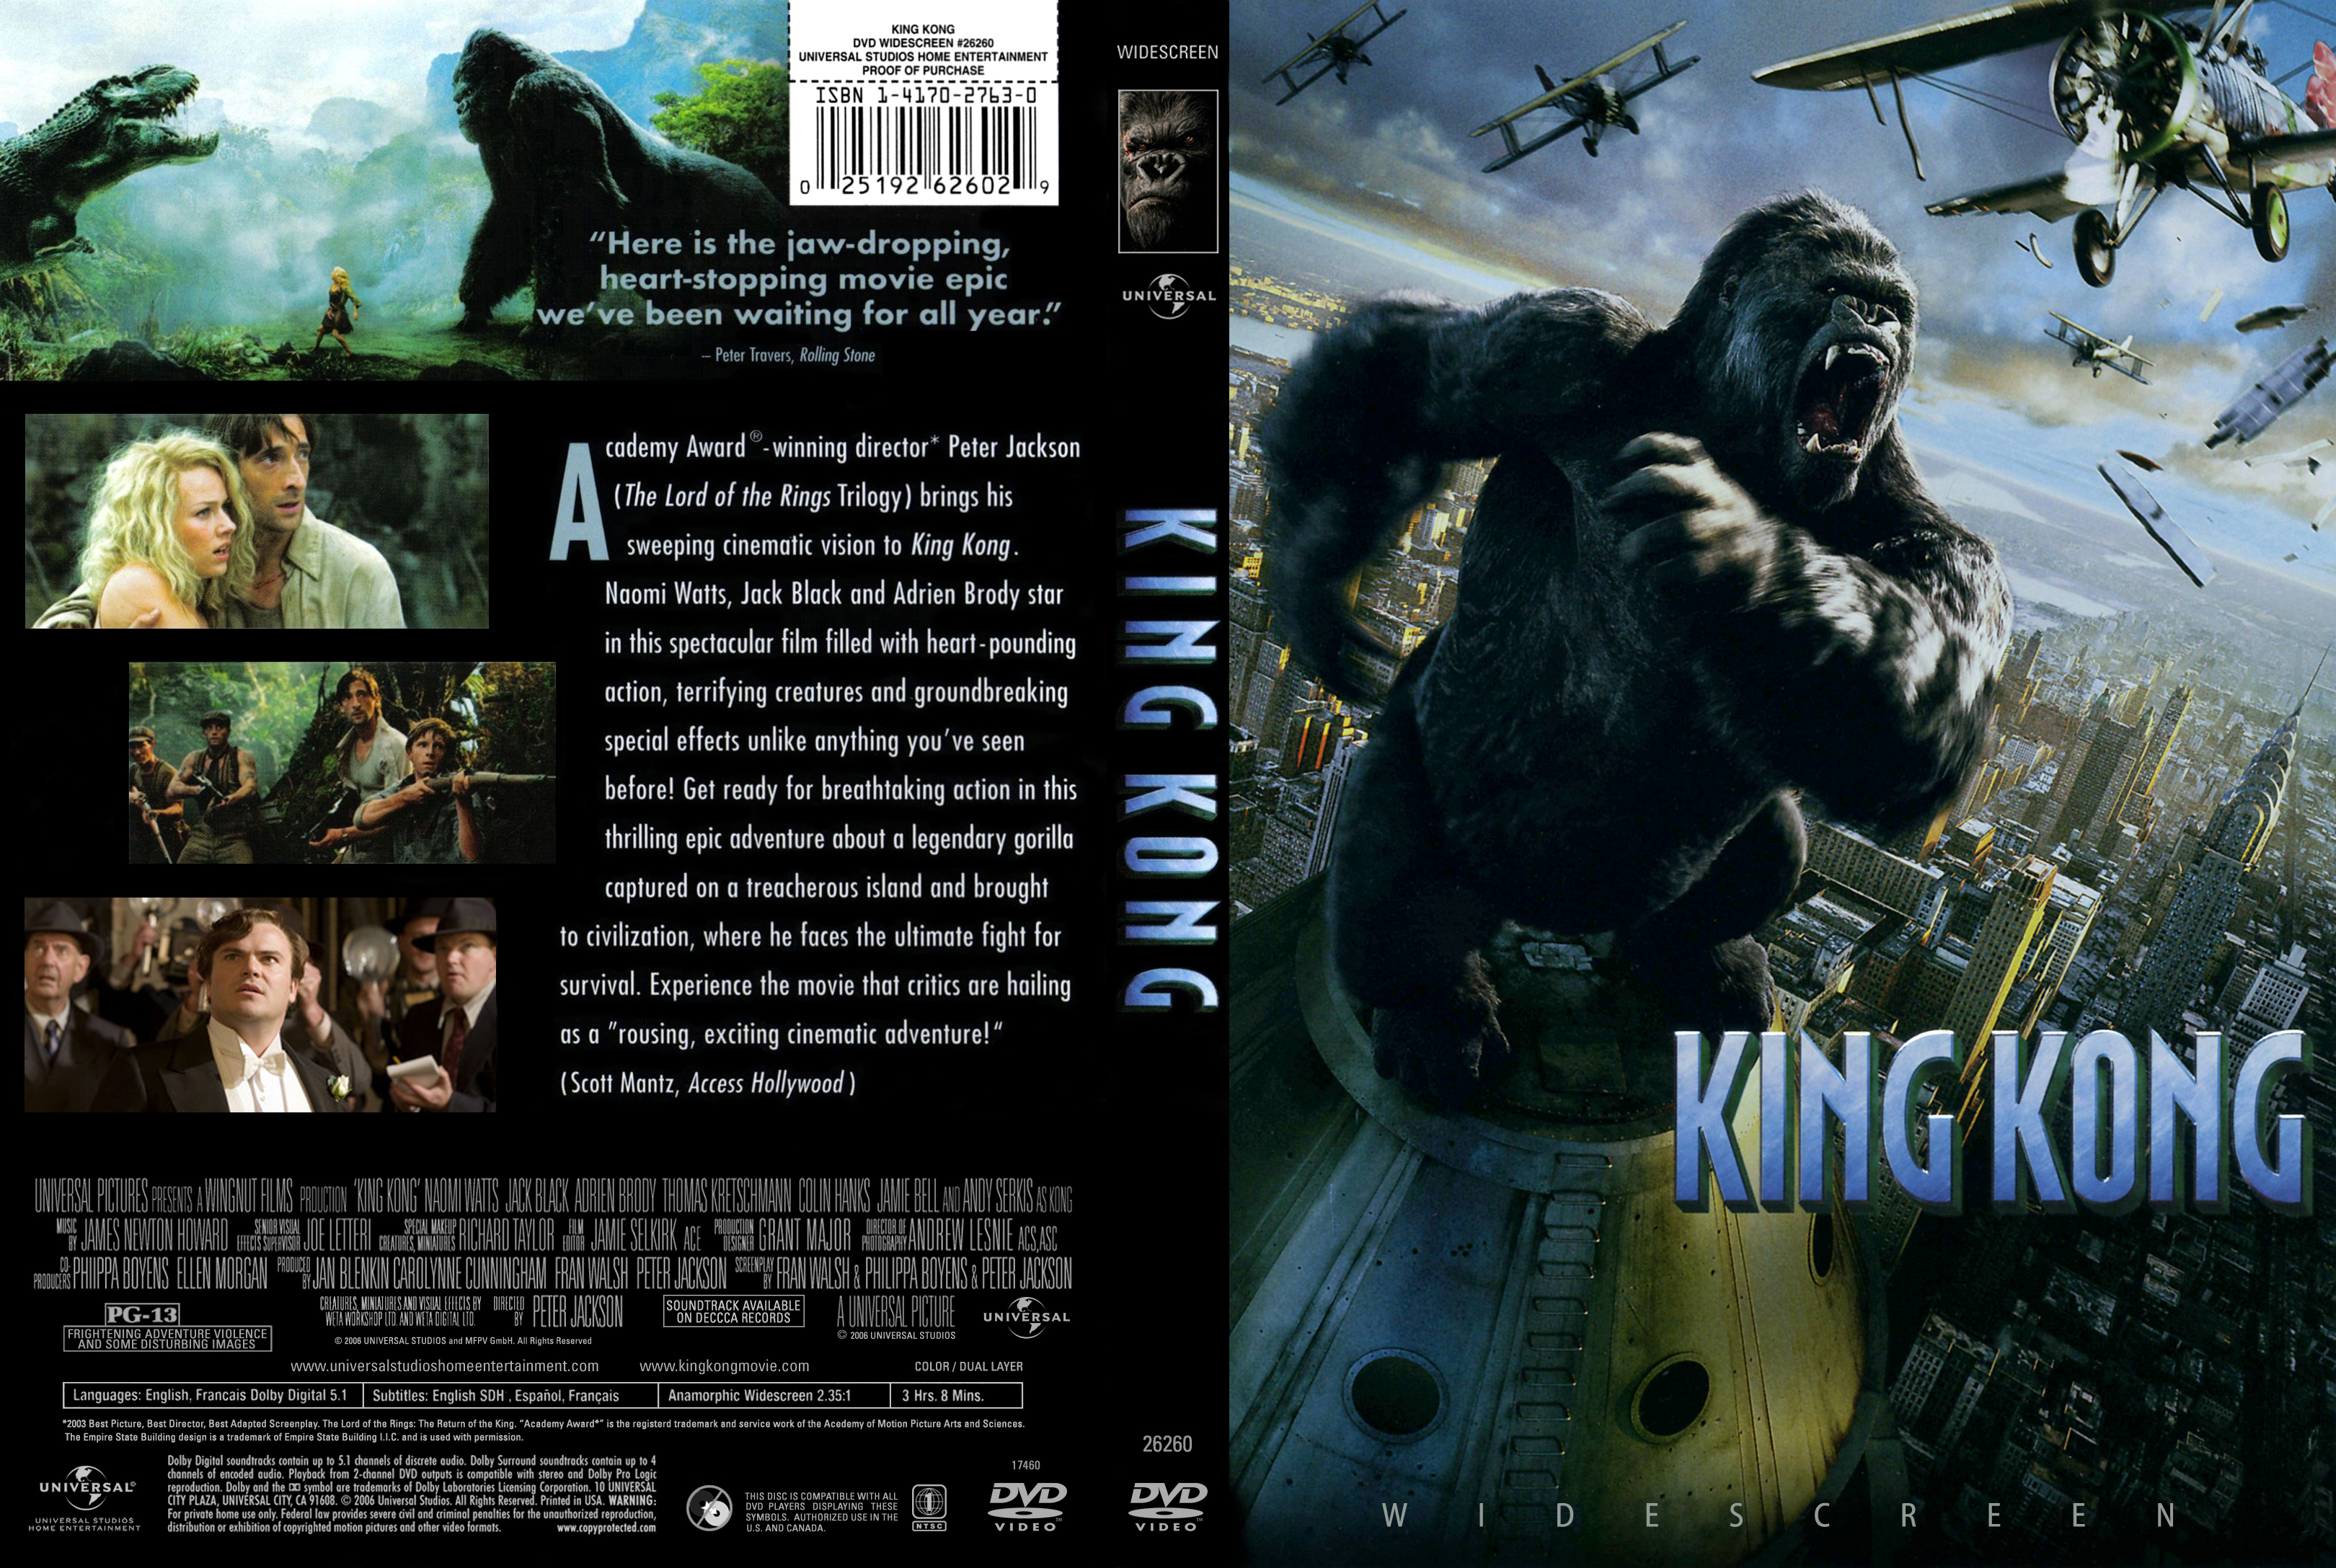 King Kong The History of a Movie Icon from Fay Wray to